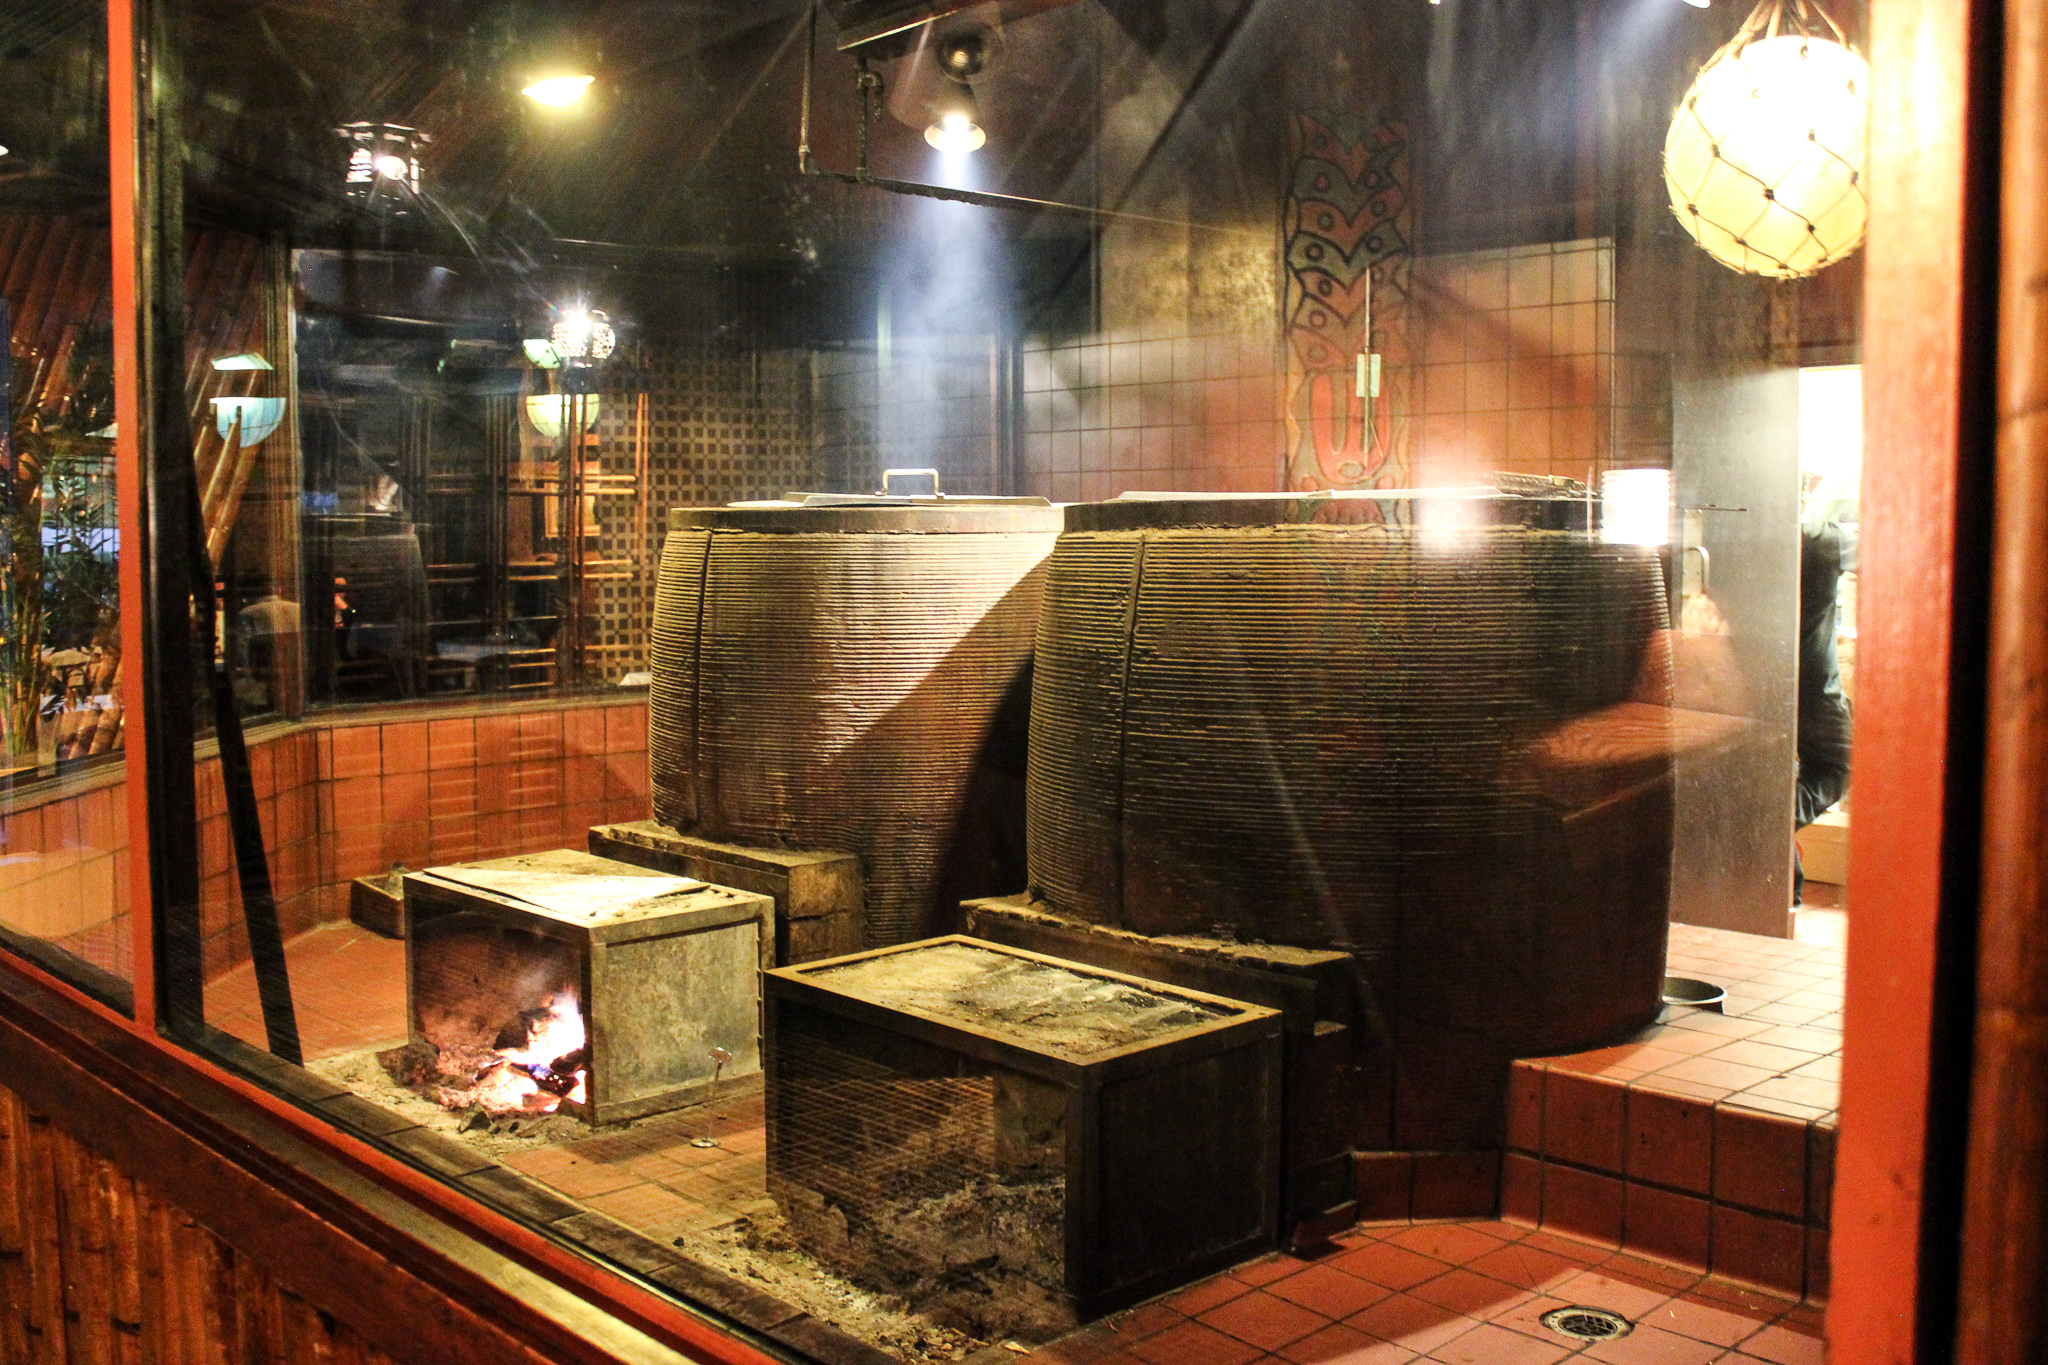 The Chinese wood-fire ovens at Trader Vic's in Atlanta (c) Anna Lanfreschi